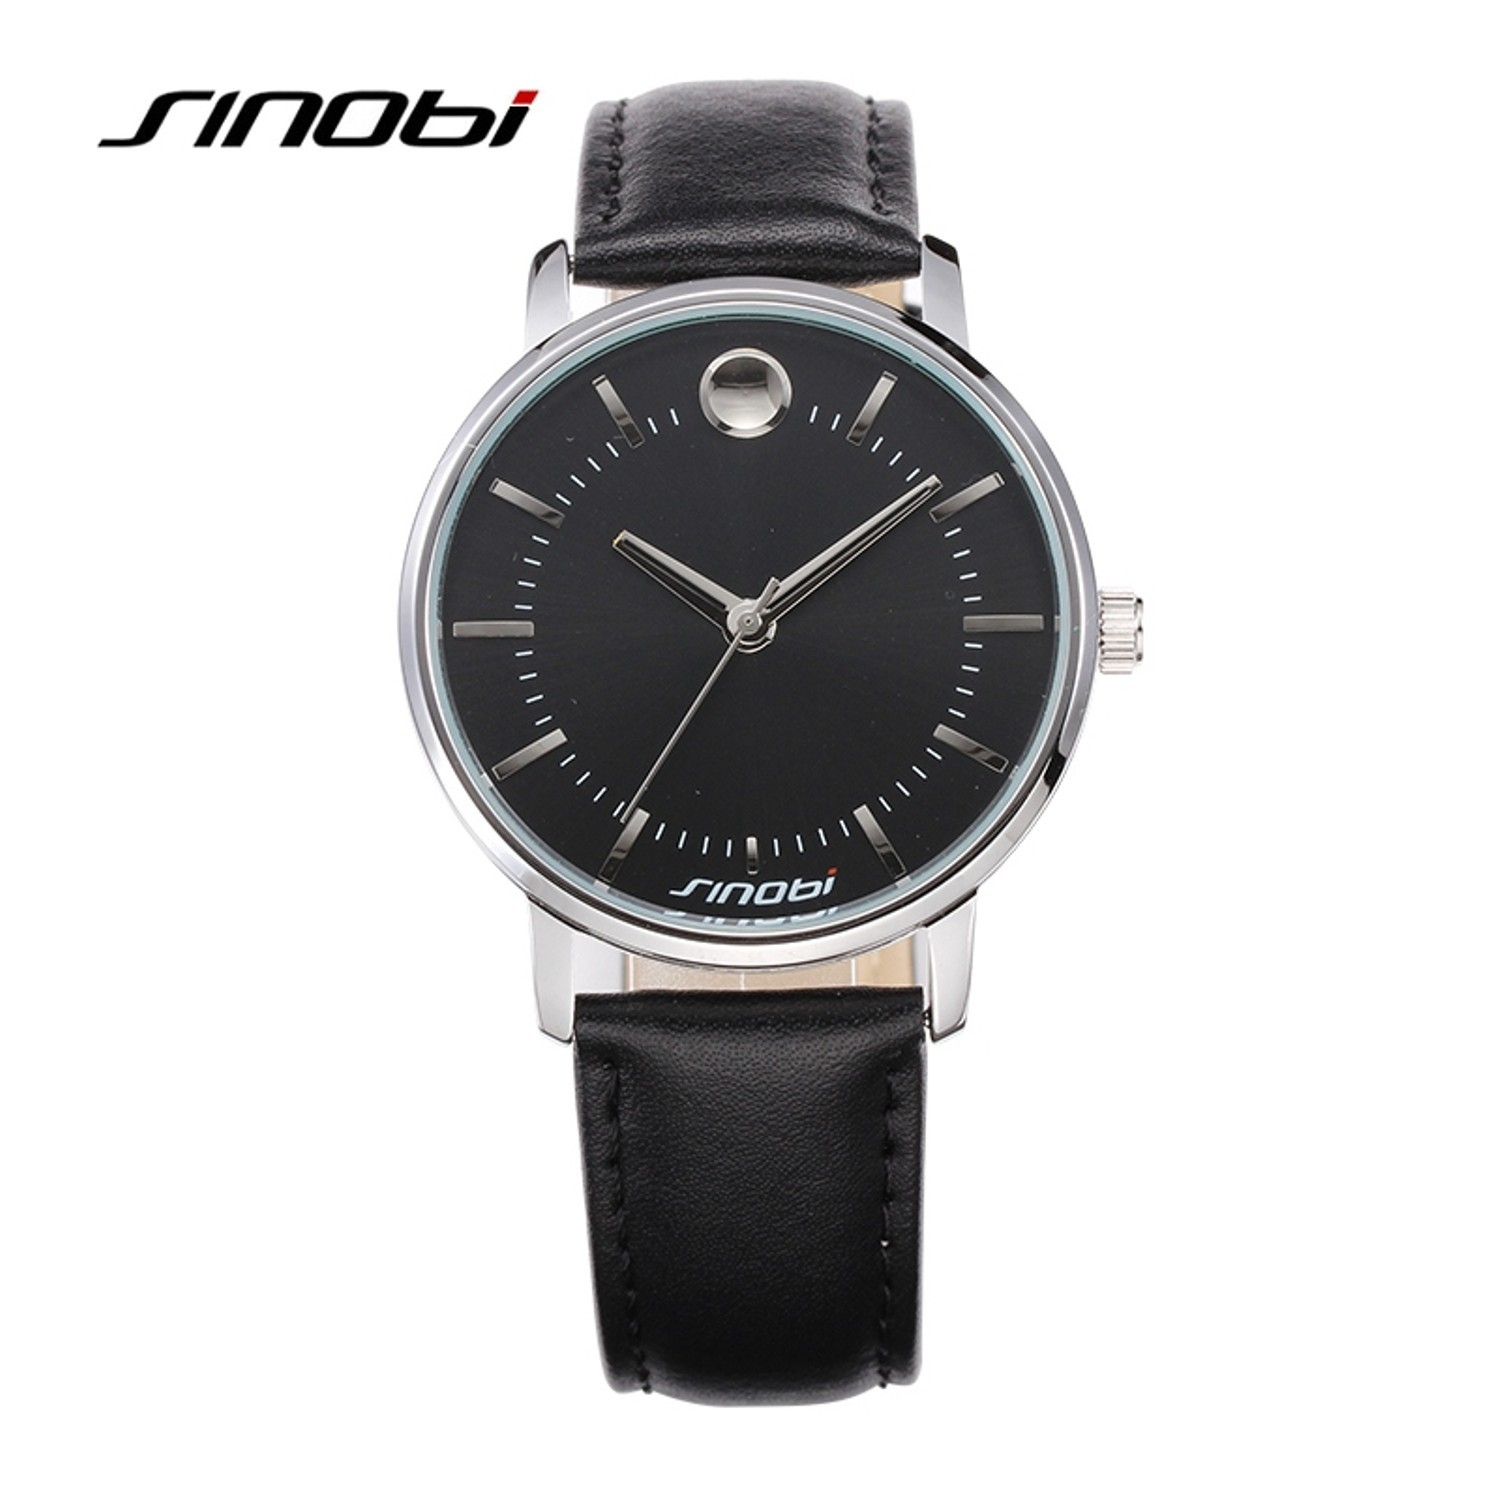 SINOBI-Men-s-Wrist-Watches-Top-Luxury-Brand-Leather-Watchband-Male-Geneva-Quartz-Clock-Gents-business_1500x1500_STRETCH_11S8131G03.jpg